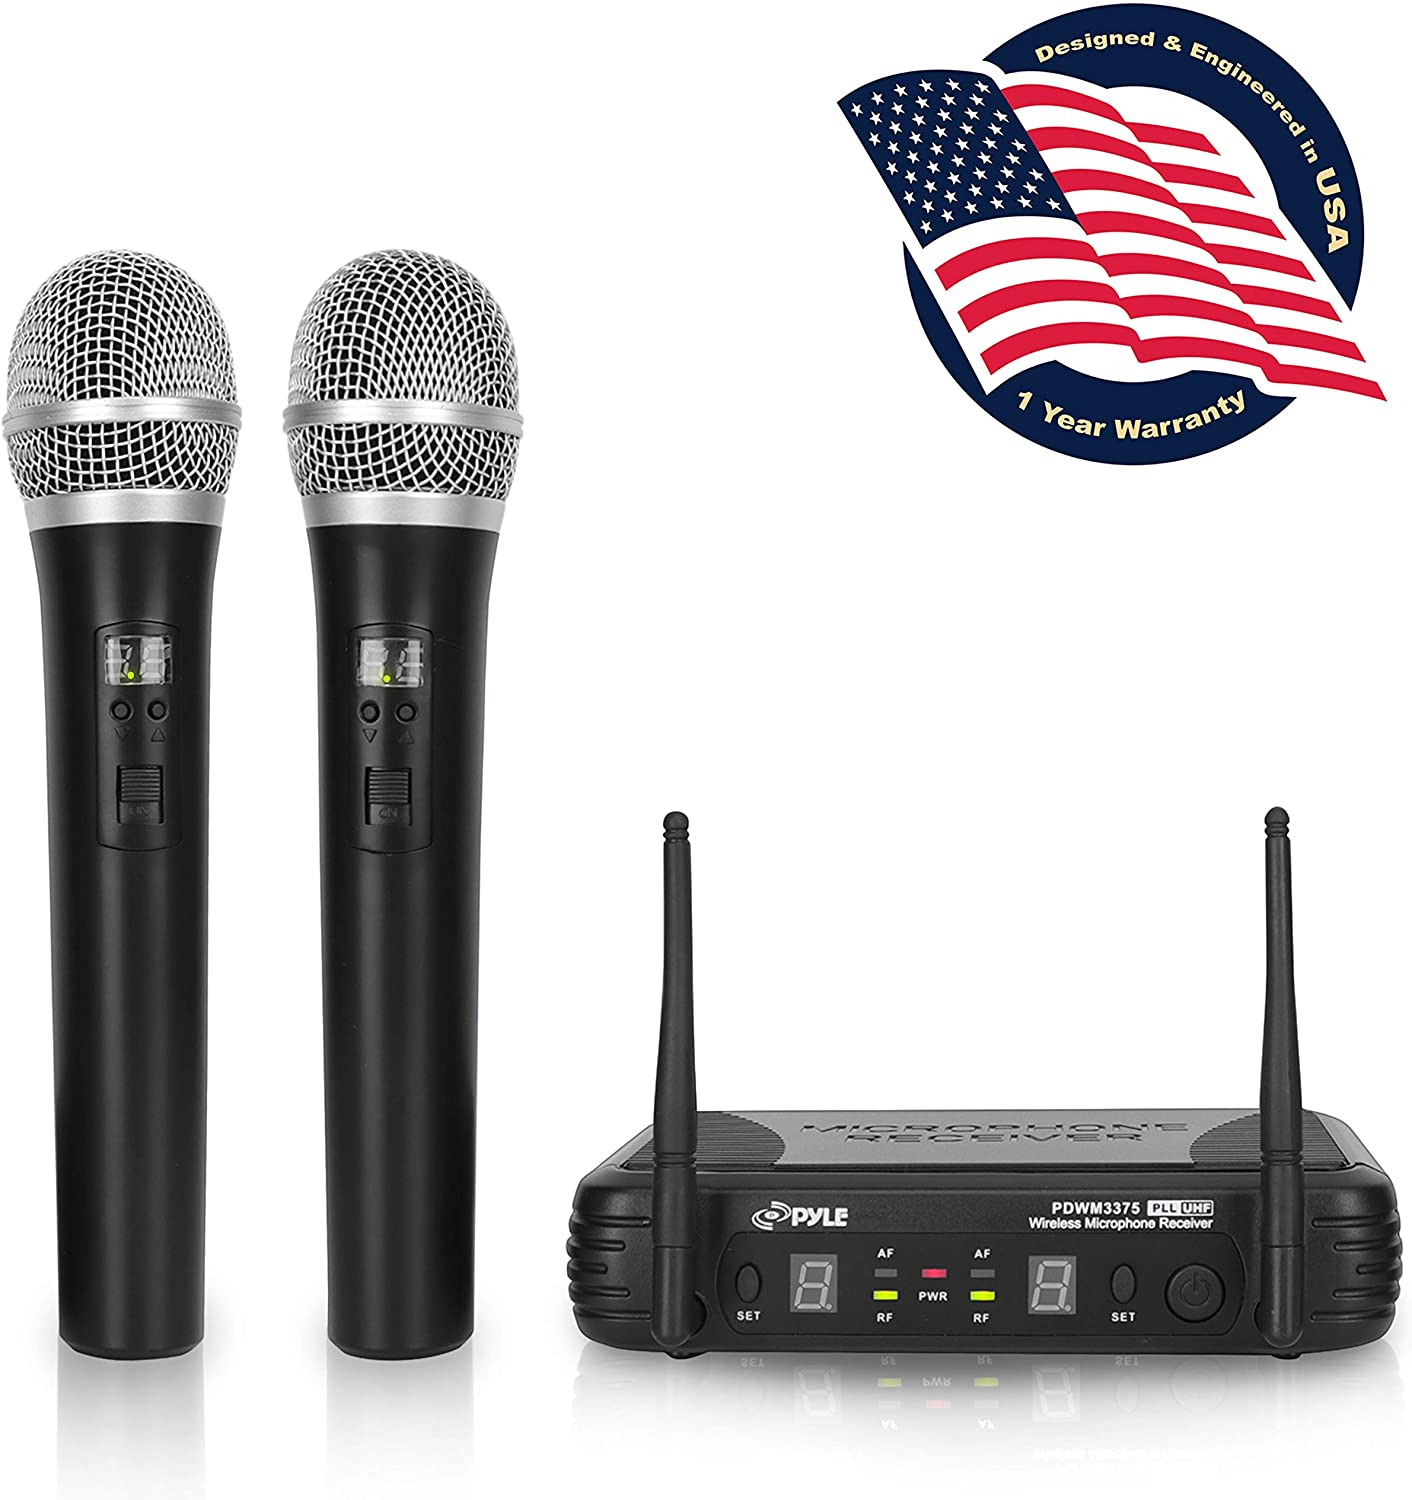 Pyle PBWM3375 Professional Wireless Microphone